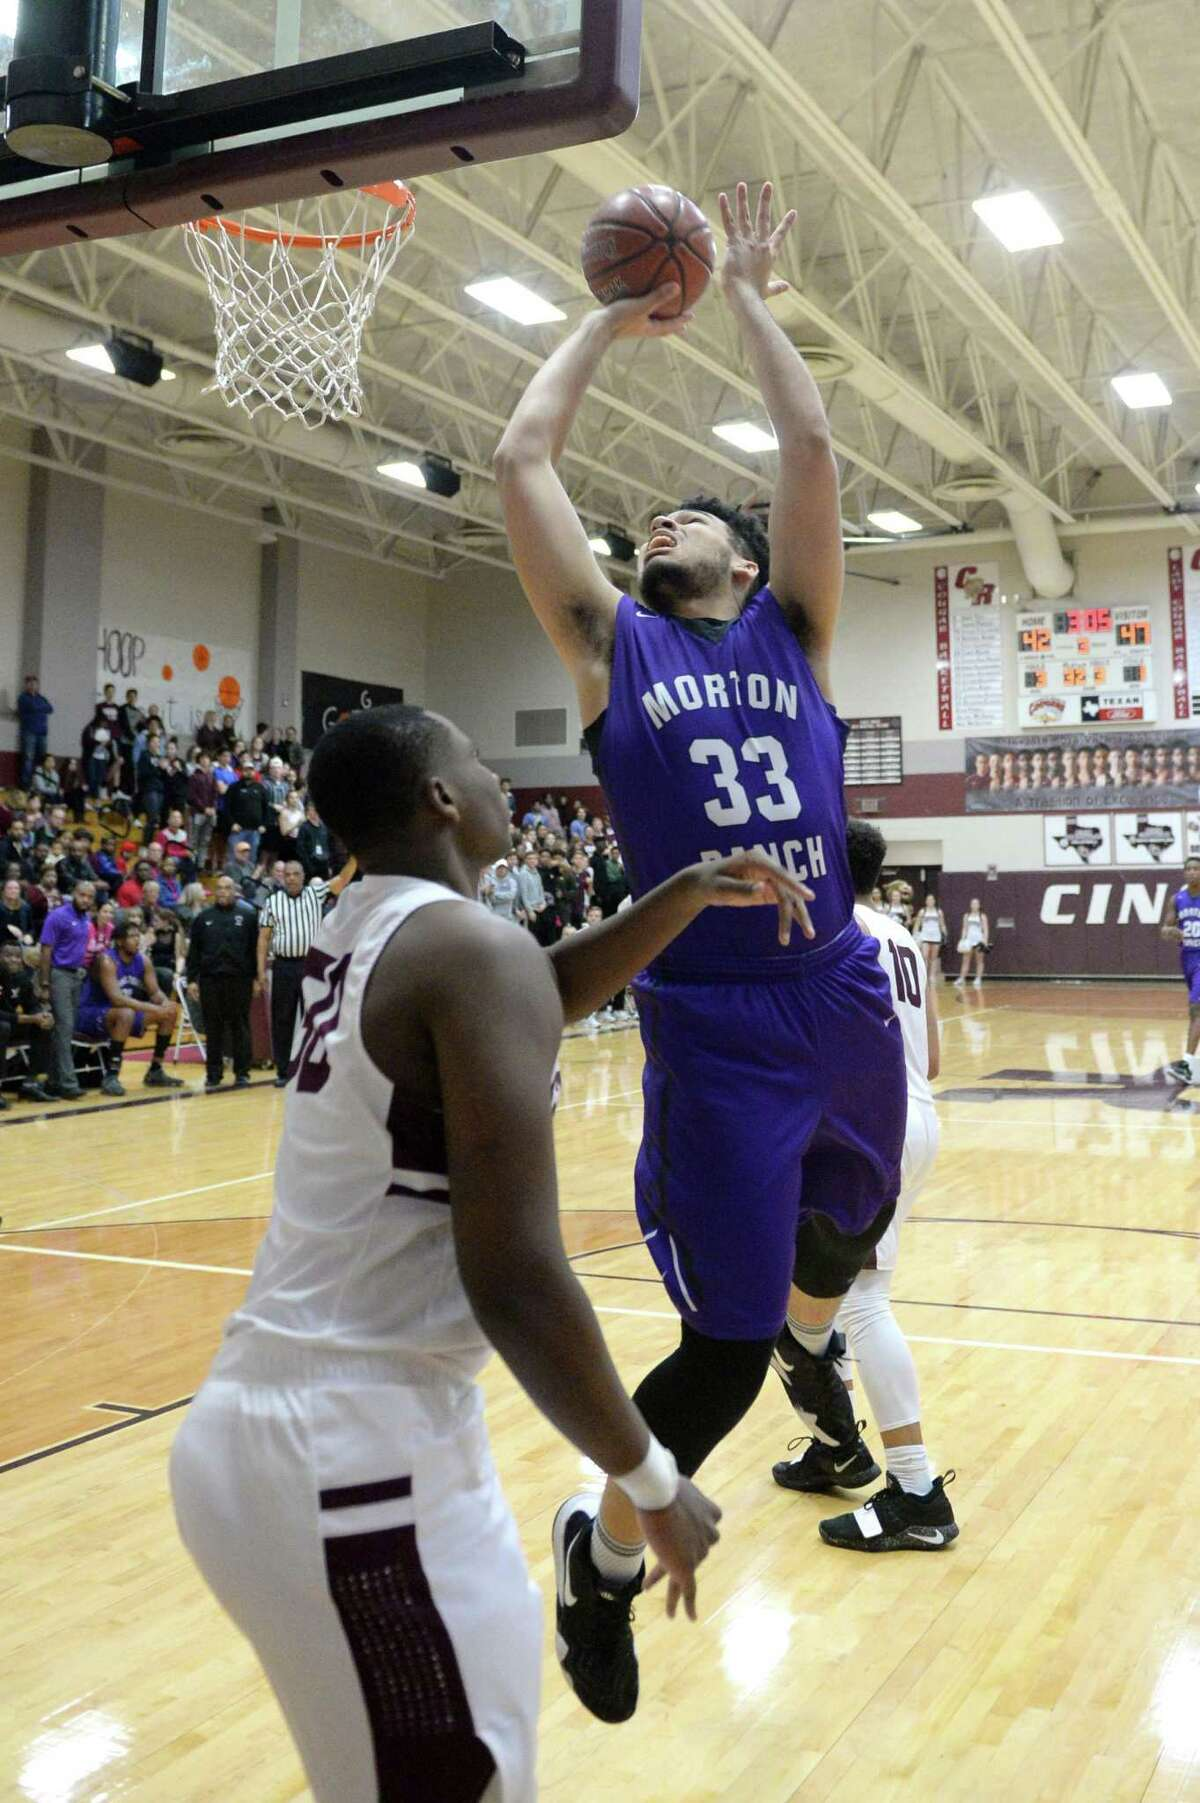 Noah Dickey (33) of Morton Ranch attempts a shot during the second half of a high school basketball game between the Cinco Ranch Cougars and the Morton Ranch Mavericks on Tuesday January 29, 2019 at Cinco Ranch HS, Katy, TX.